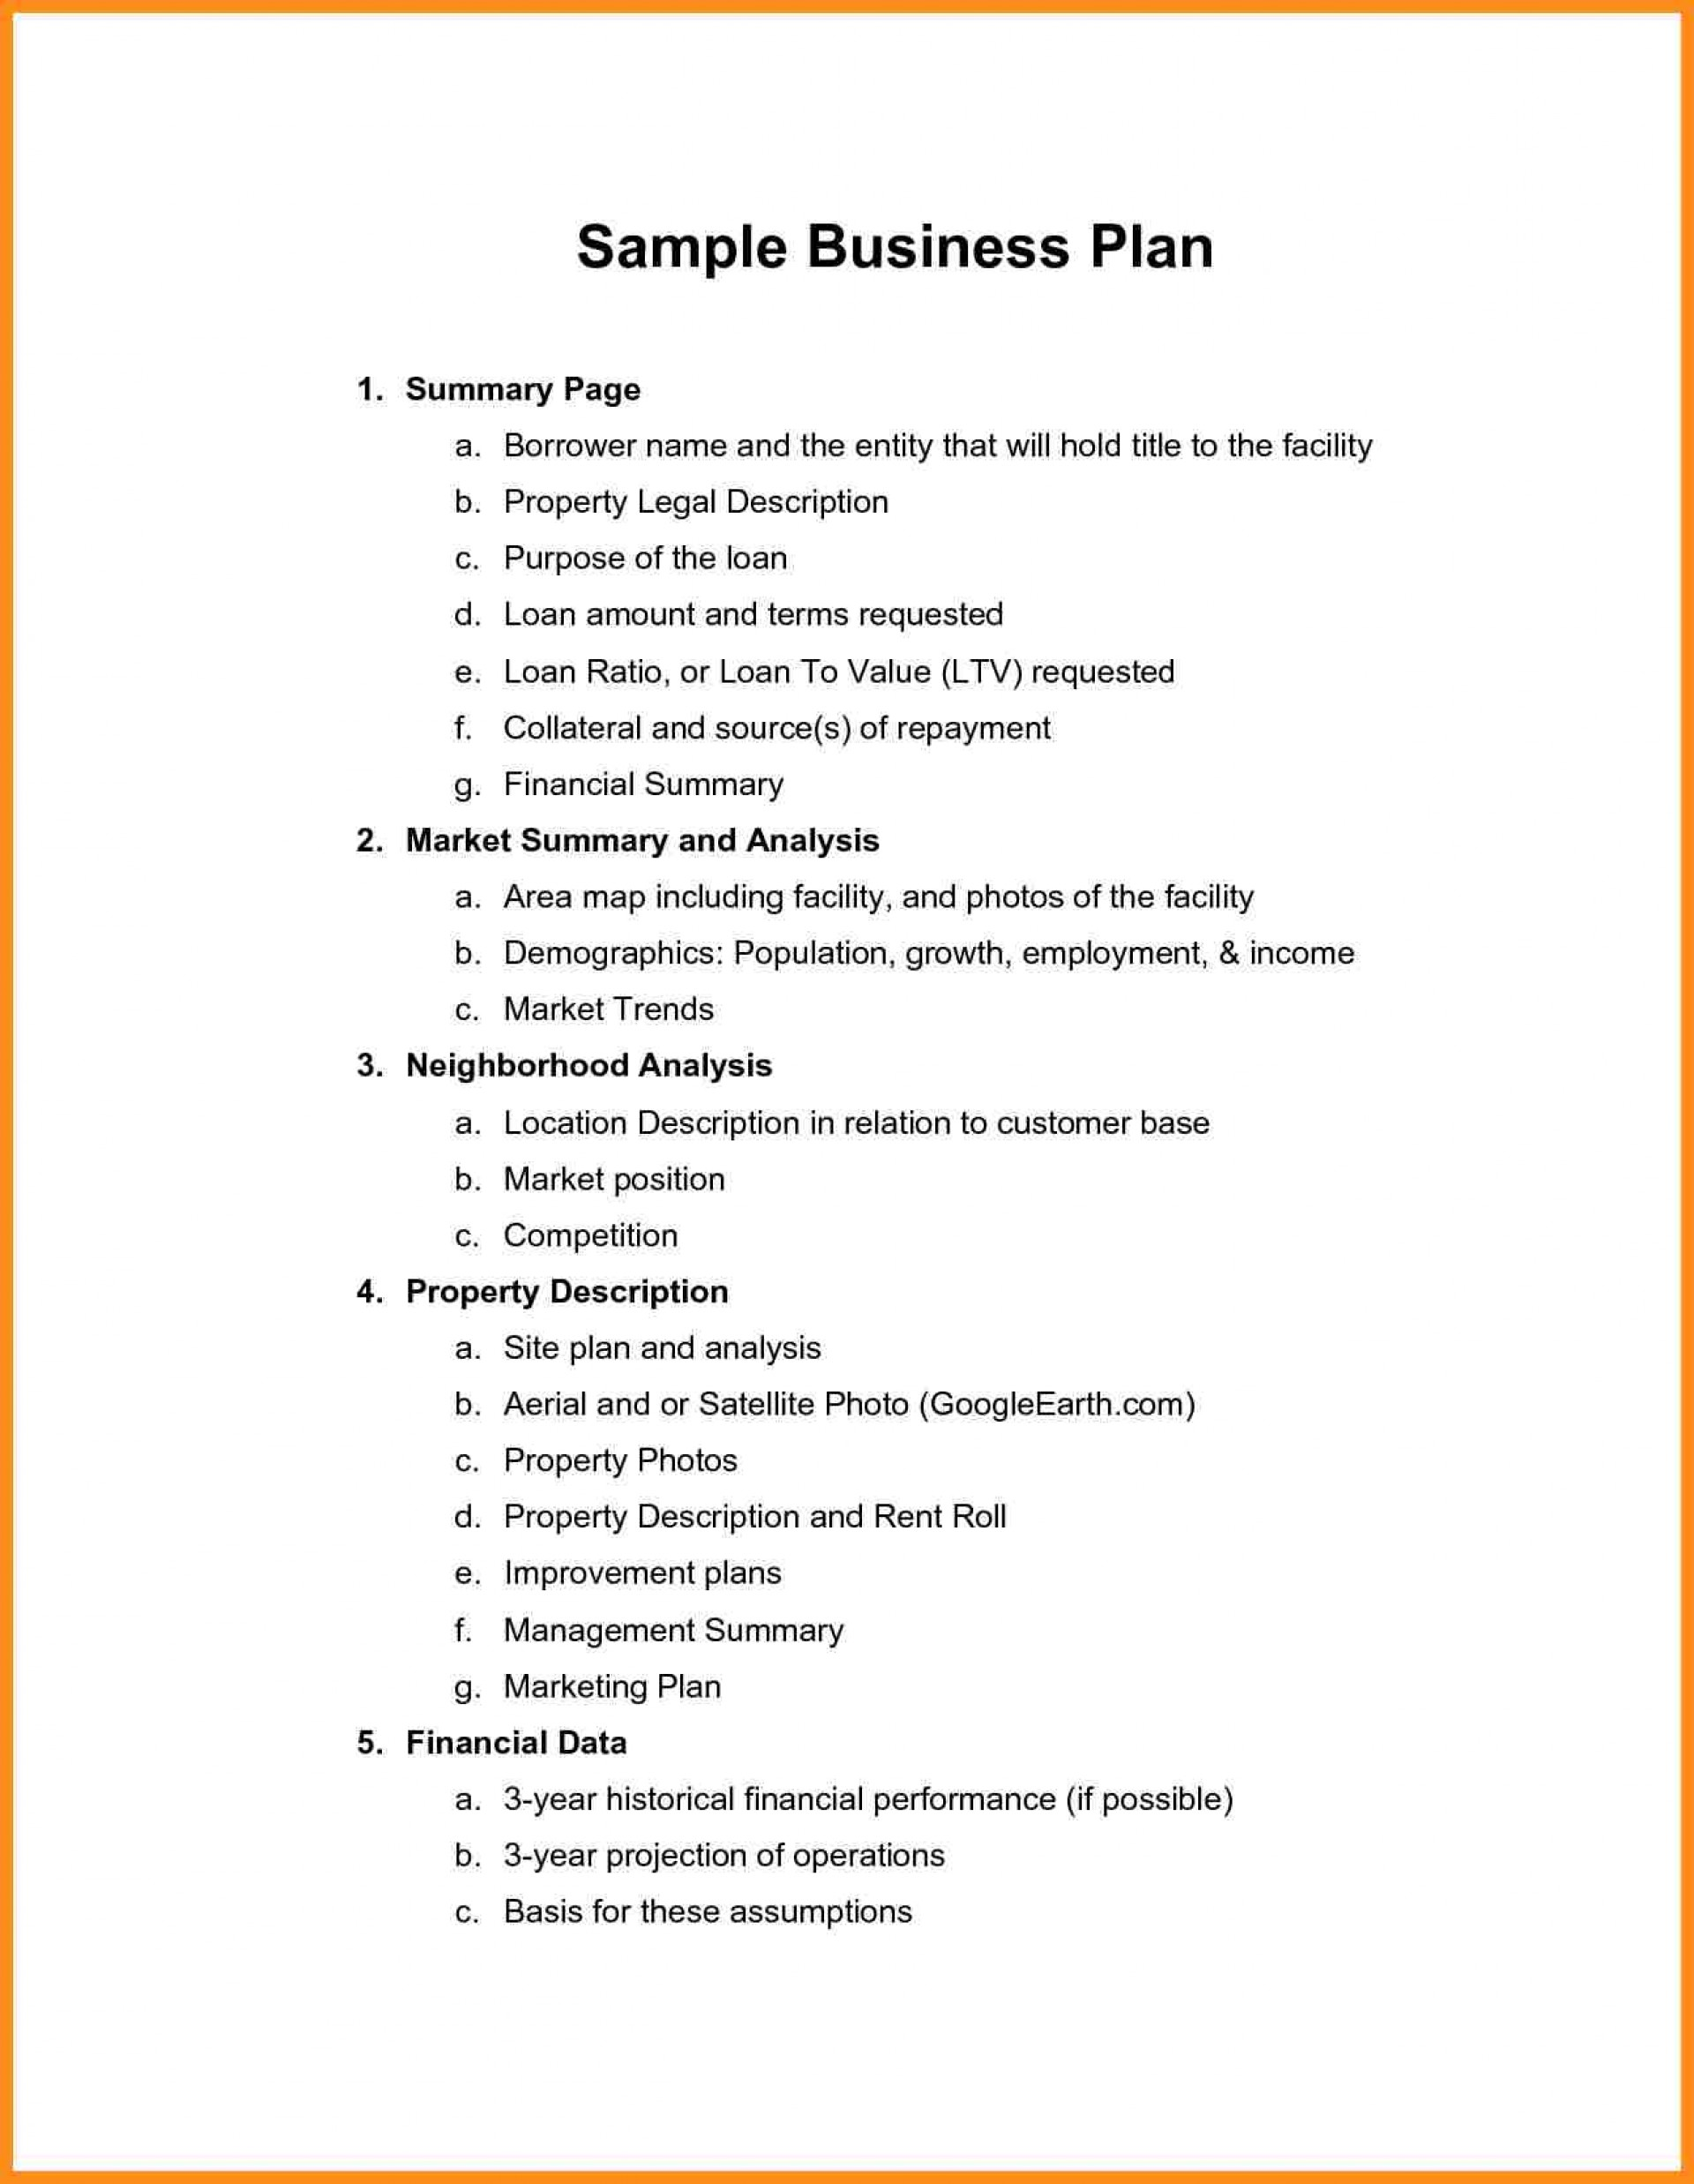 021 Research Paper Parts Of And Its Definition Pdf Business Plan Examples Free Resume Sba Template W Introduction Presentation Explained Executive Summary Staggering A 1920